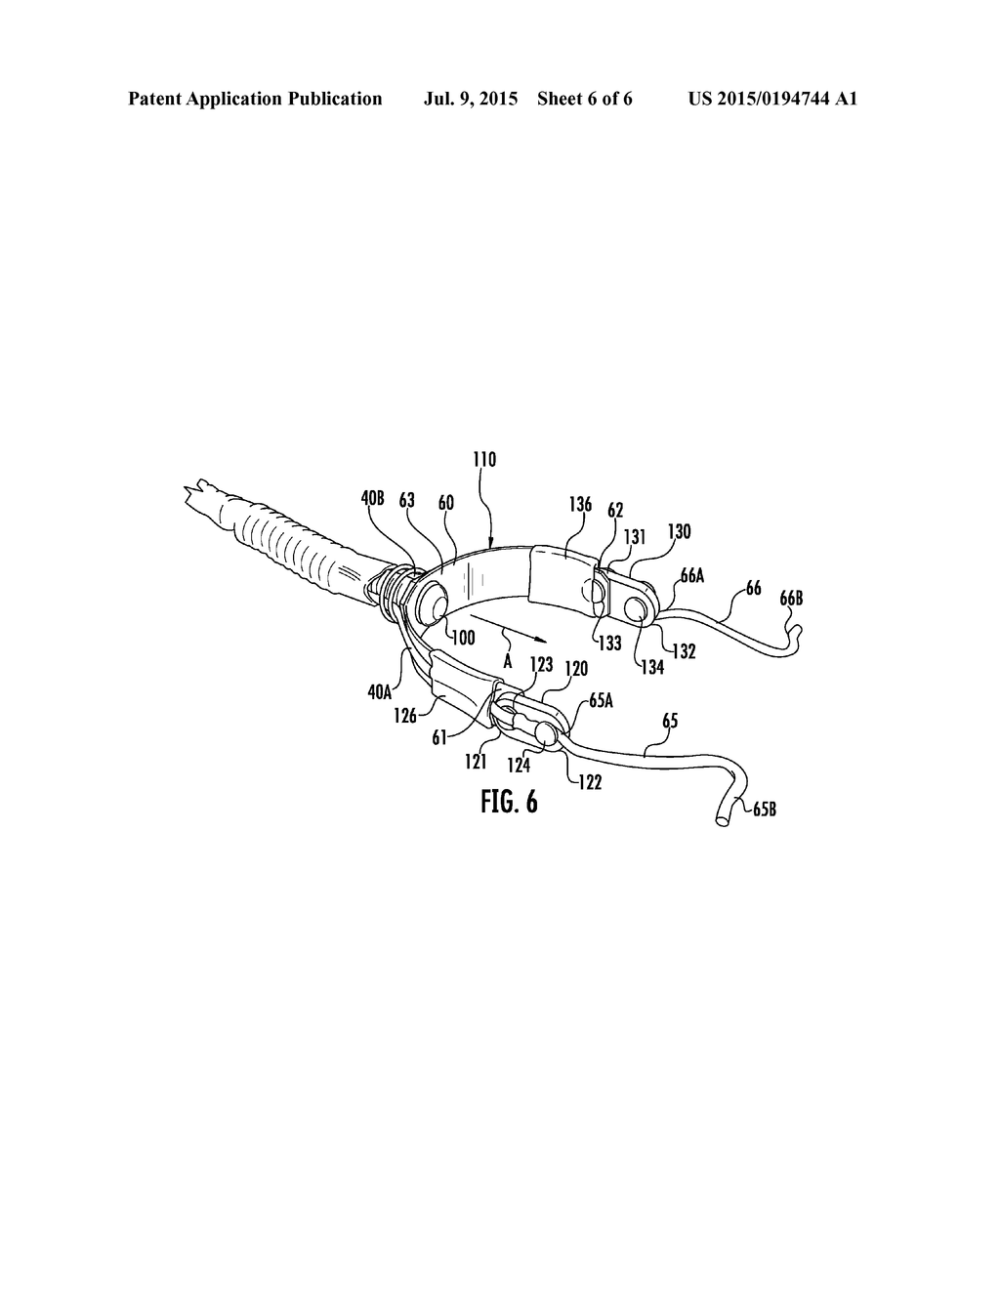 medium resolution of tattooing apparatus and clip cord assembly for electrically connecting a power supply to a tattoo machine diagram schematic and image 07